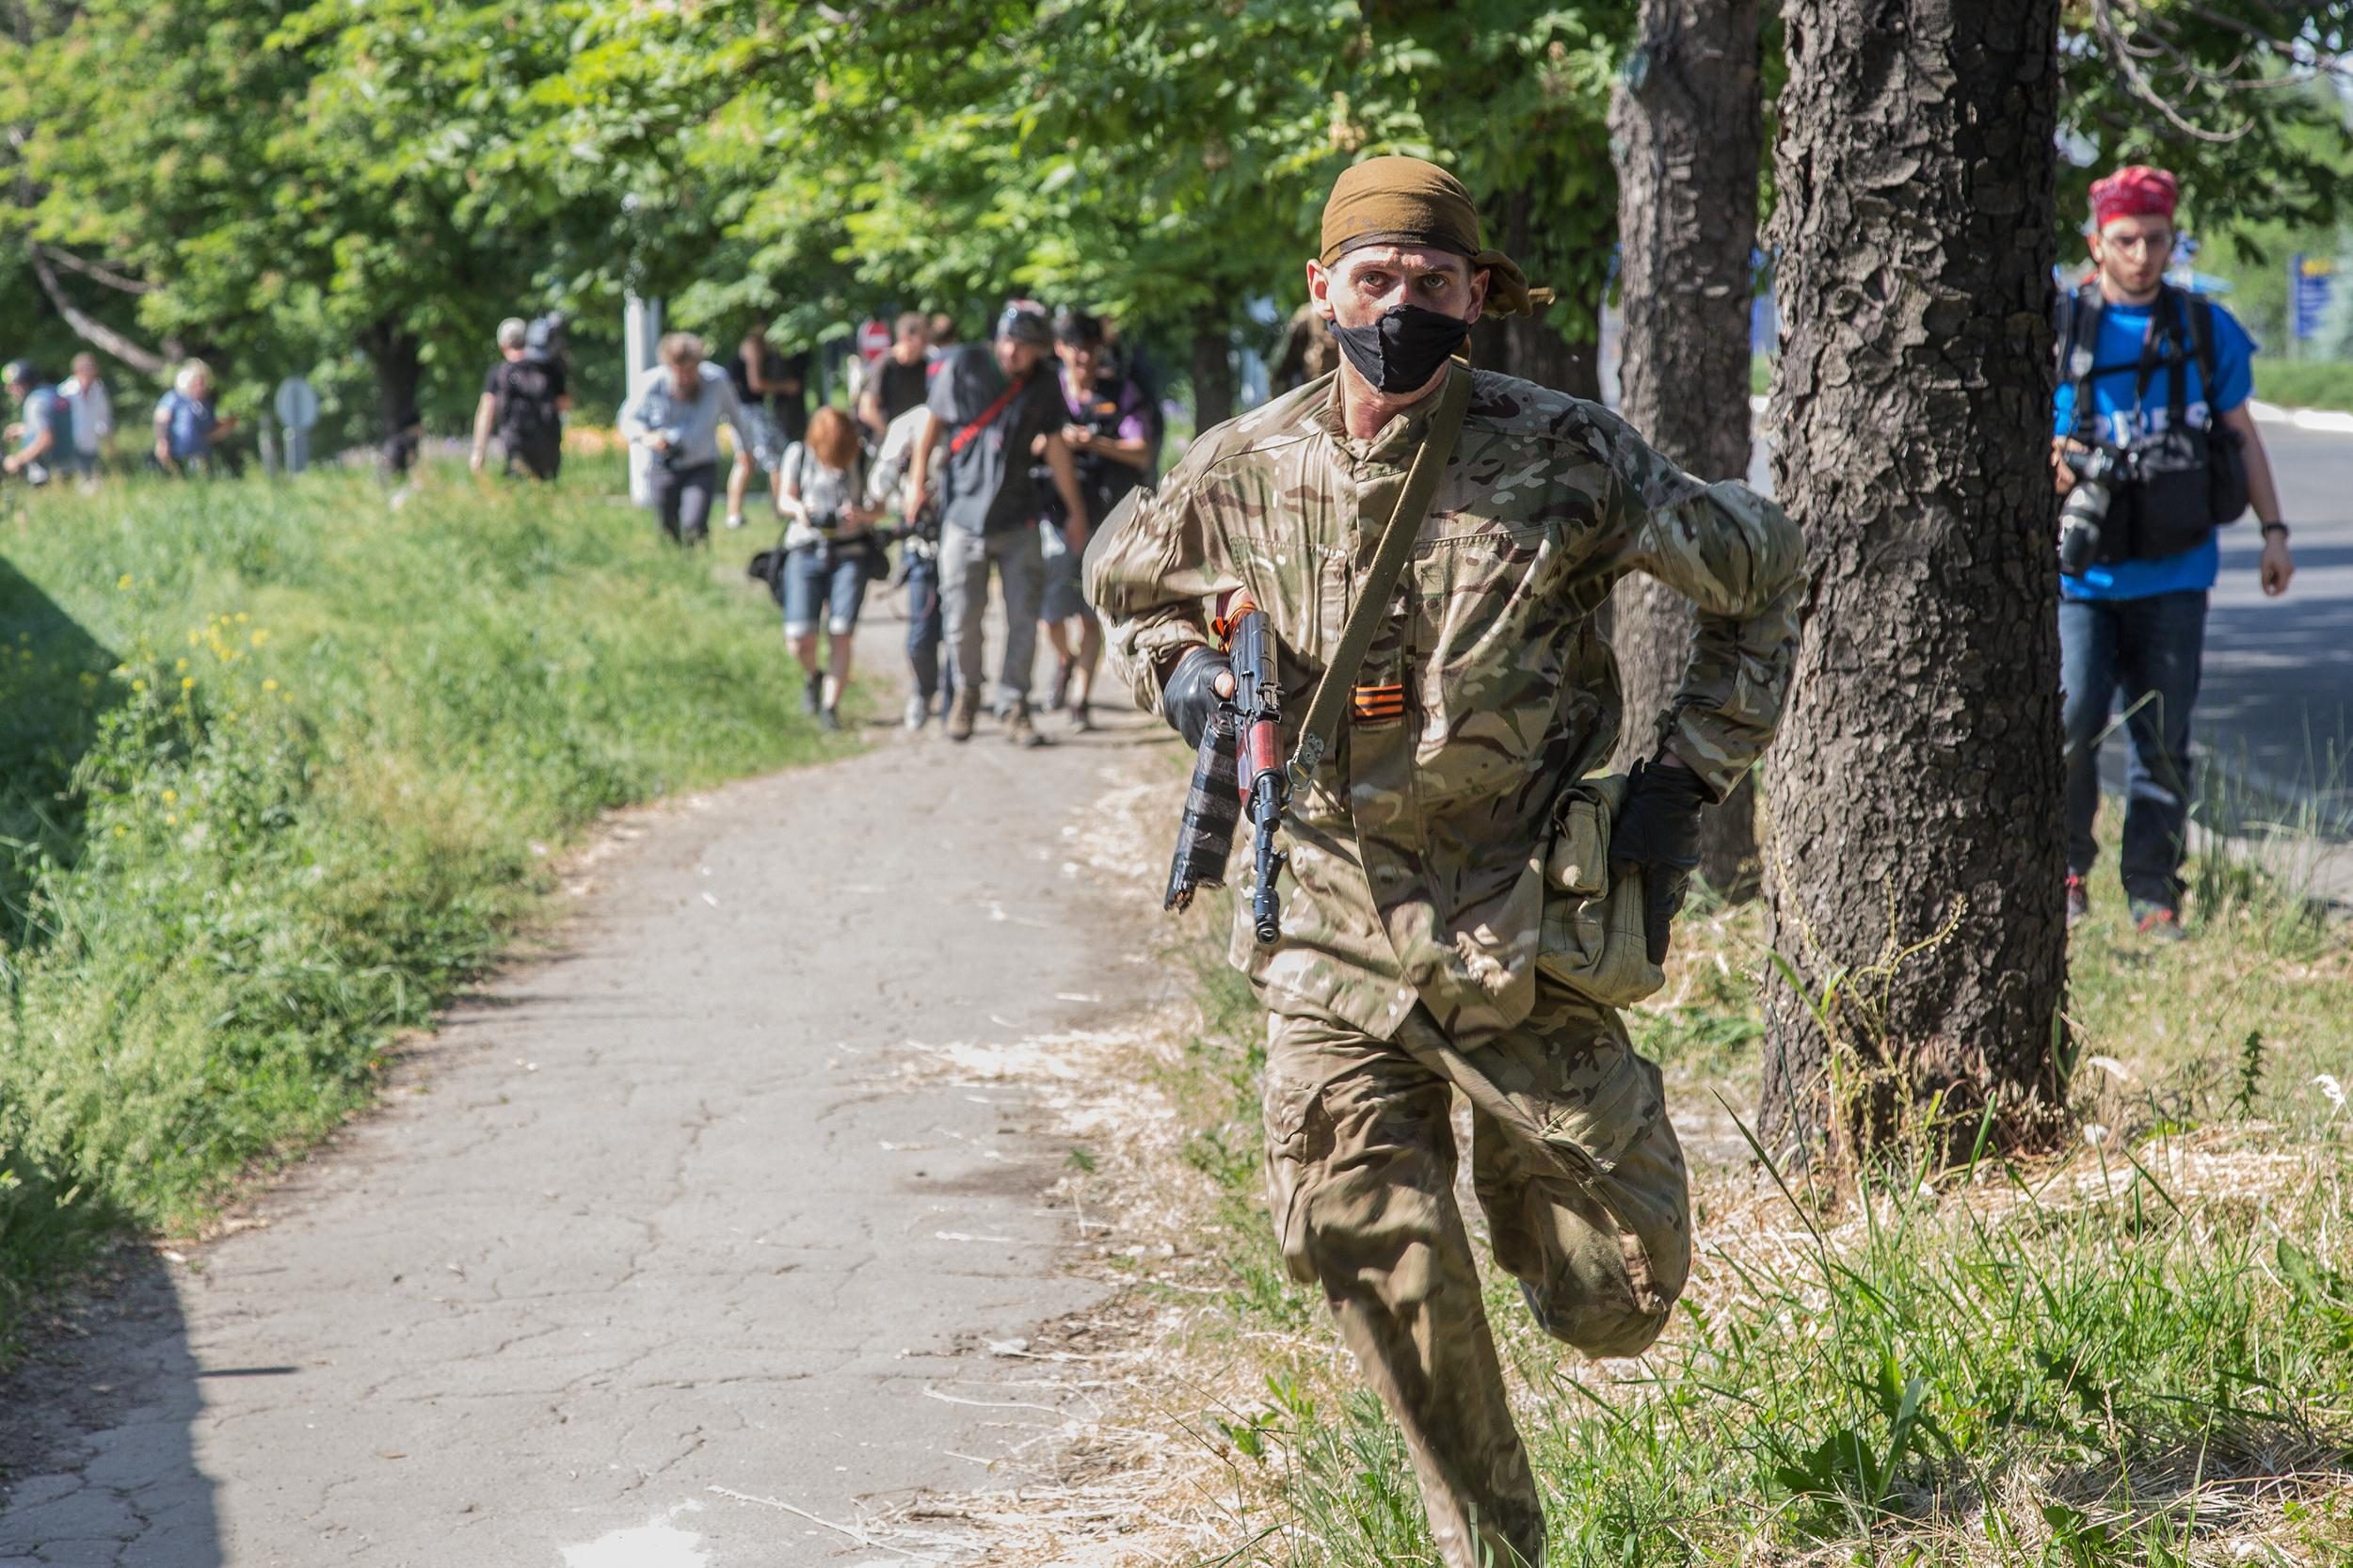 Image: A separatist combatant gets himself to safety during the fighting at Donetsk airport in Donetsk